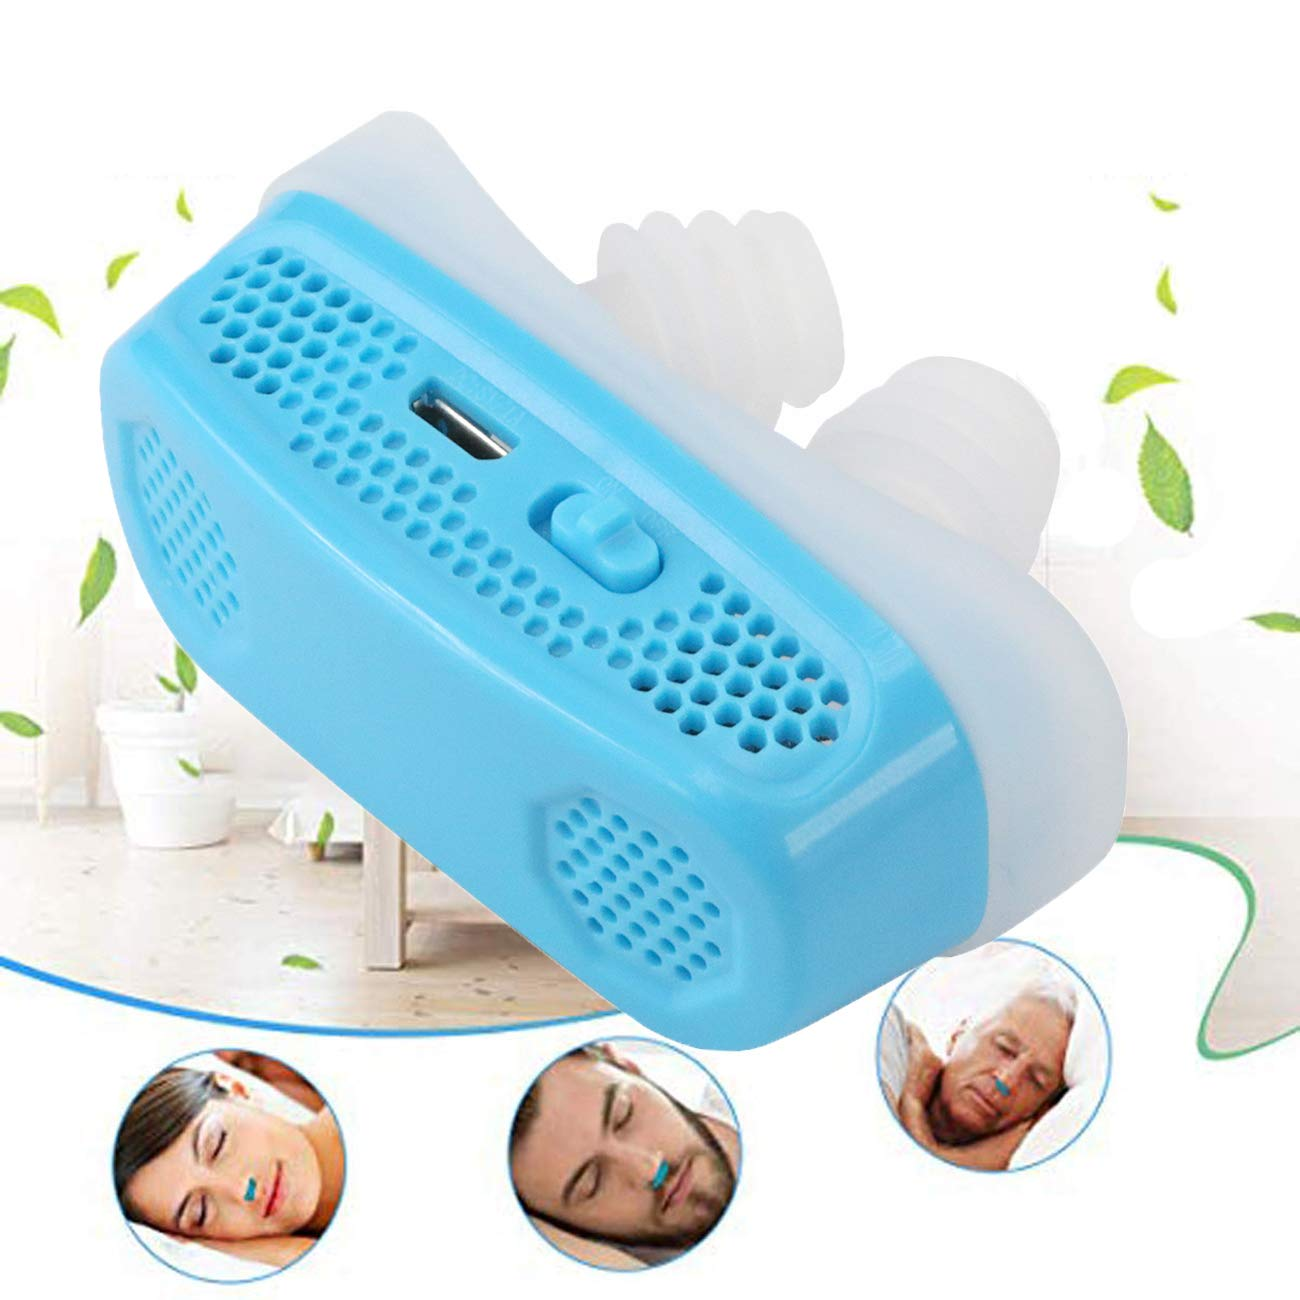 2 in 1 Electronic Anti Snoring Devices,Air Purifier[2019 Upgraded ]Natural Solution to Prevent Snoring and Purify Breath air PM2.5 Filter for Ease Breathing Comfortable Sleeping